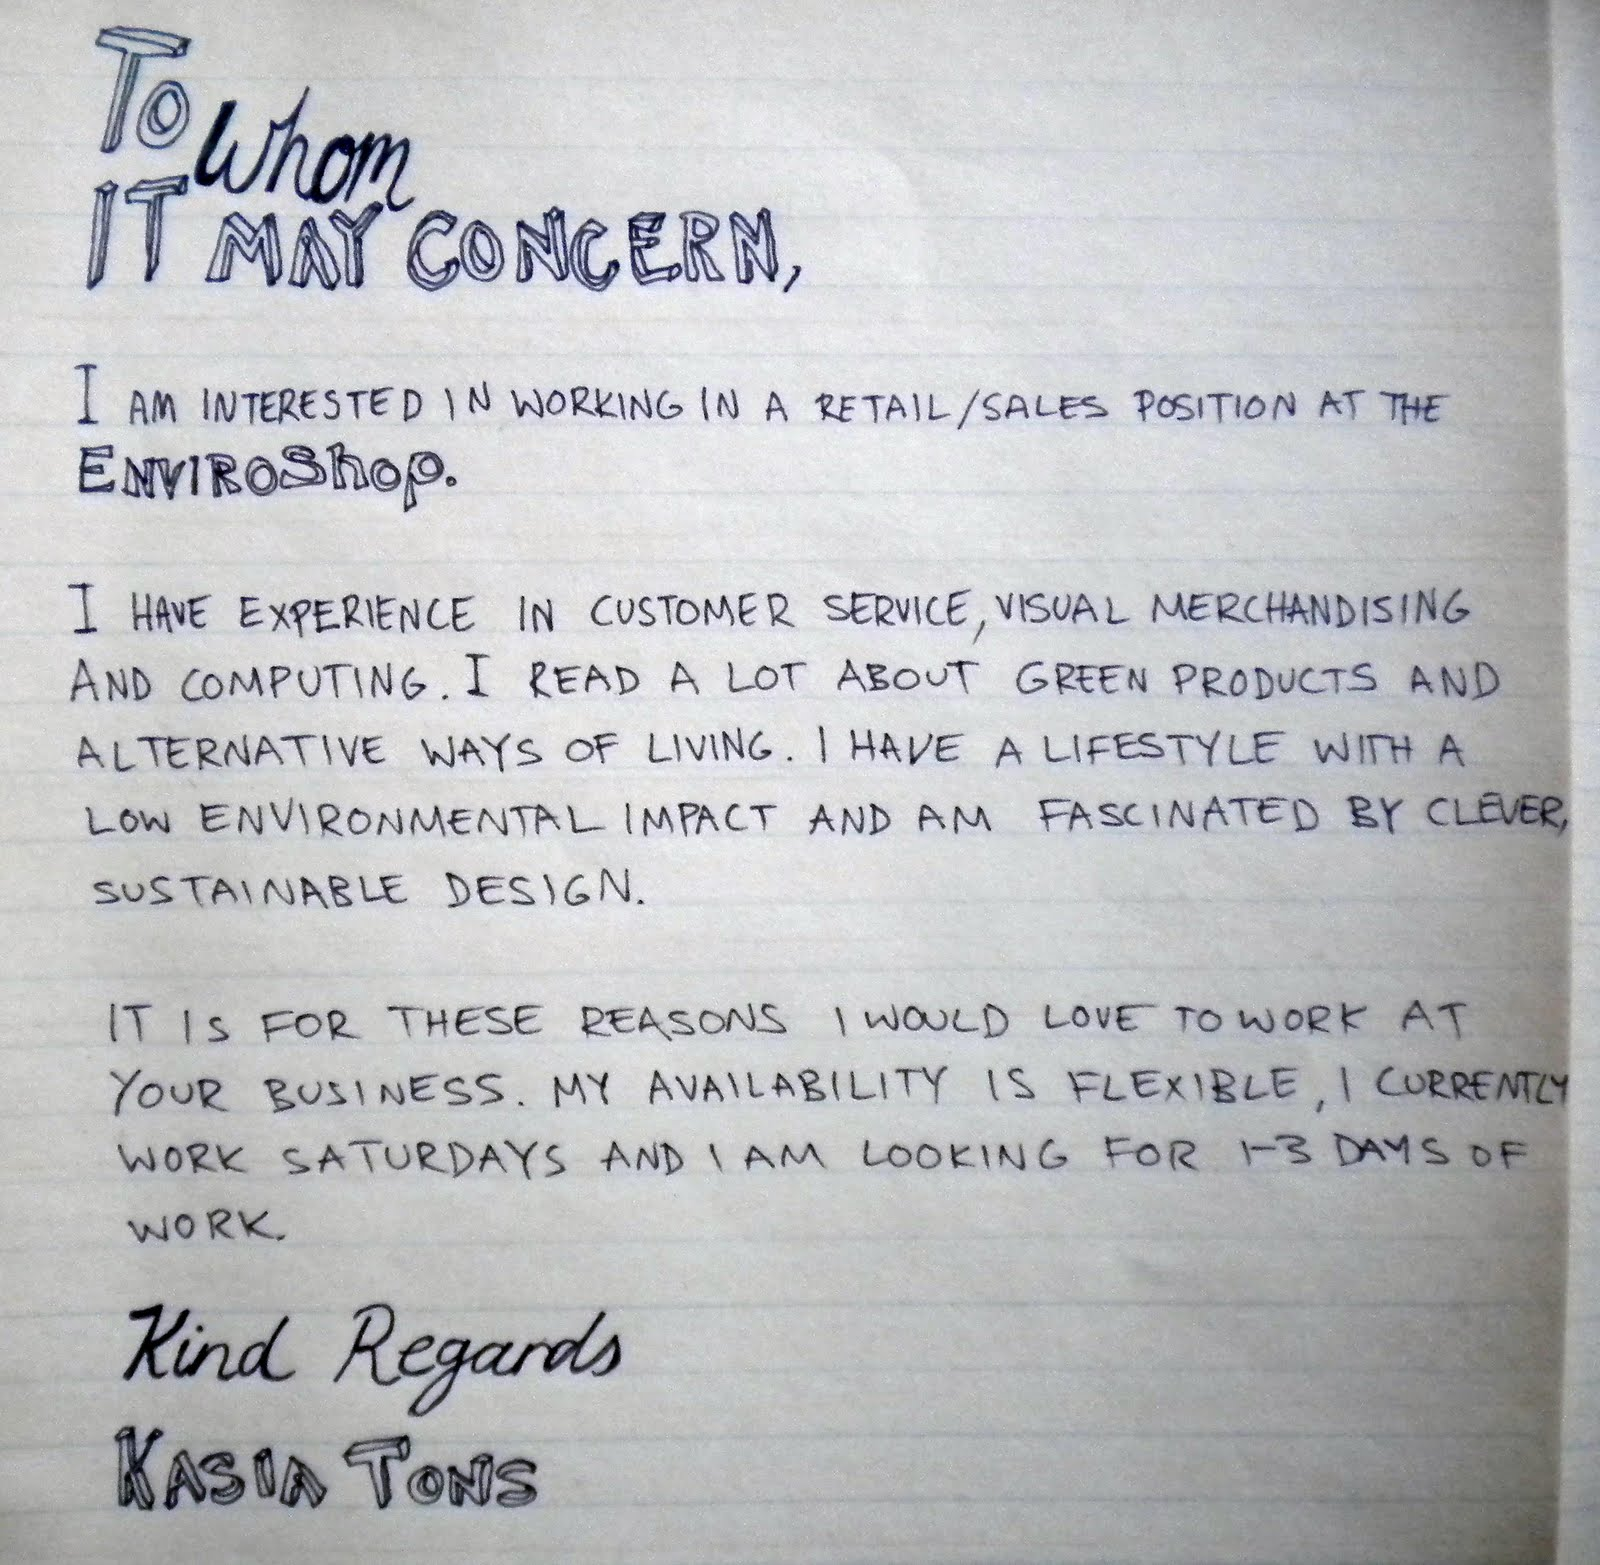 the hand written resume kasia tons